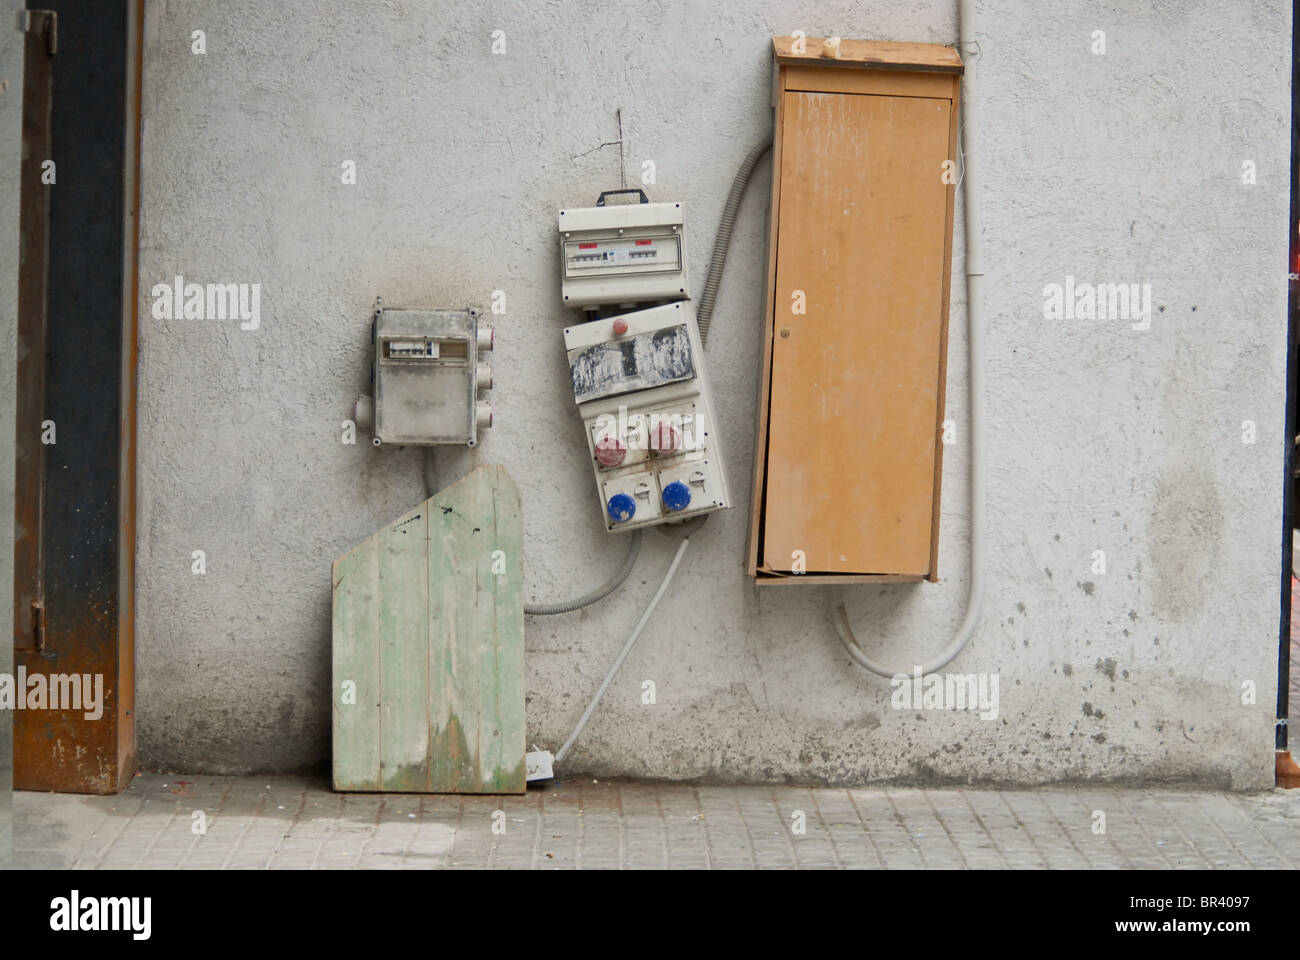 A temporary electrical power supply to a building site - Stock Image